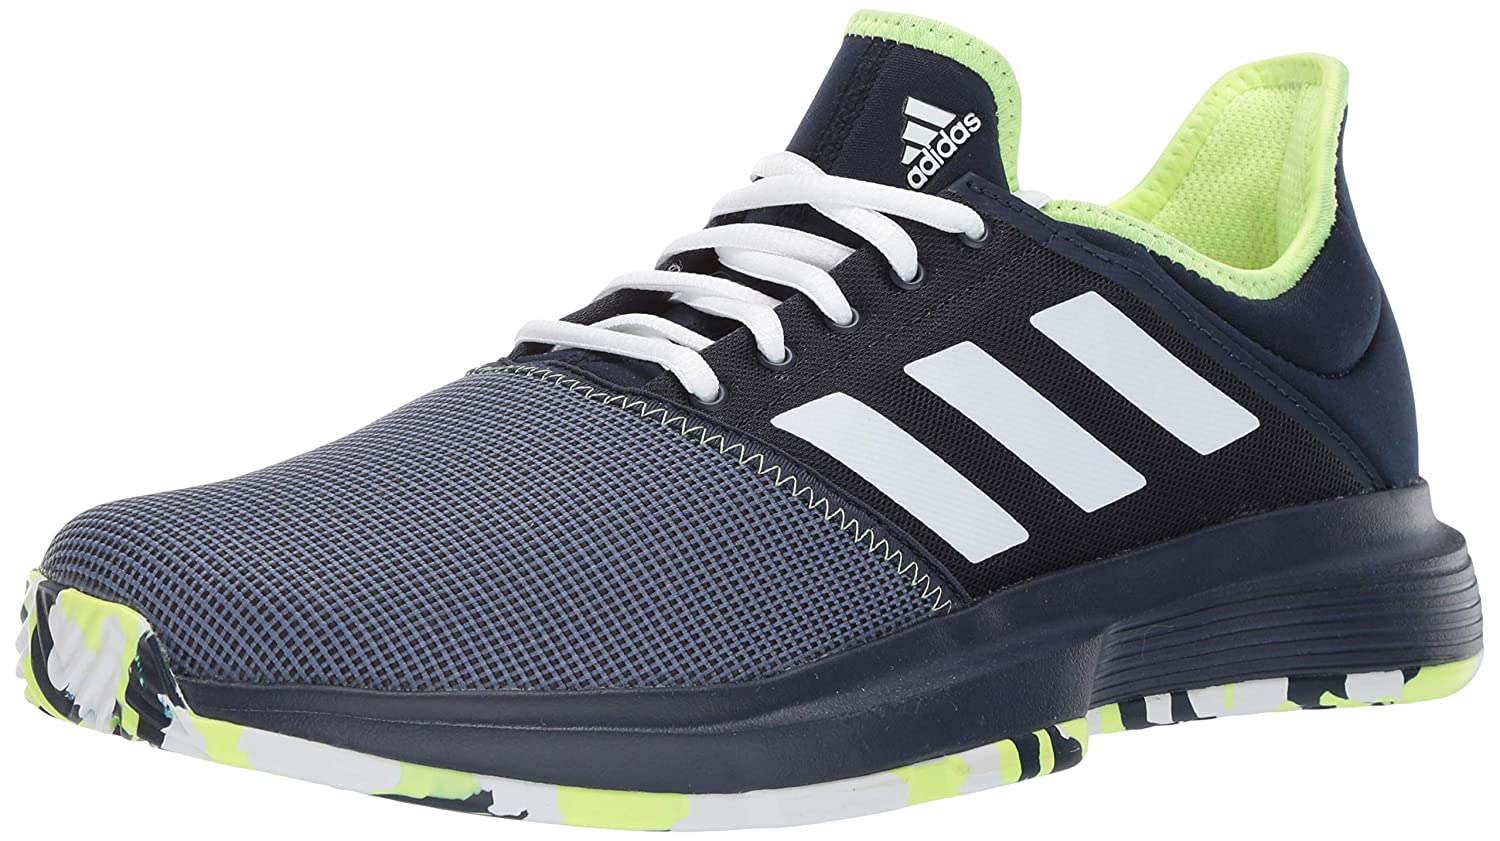 572fe36263645 Amazon.com | adidas Men's Gamecourt | Tennis & Racquet Sports